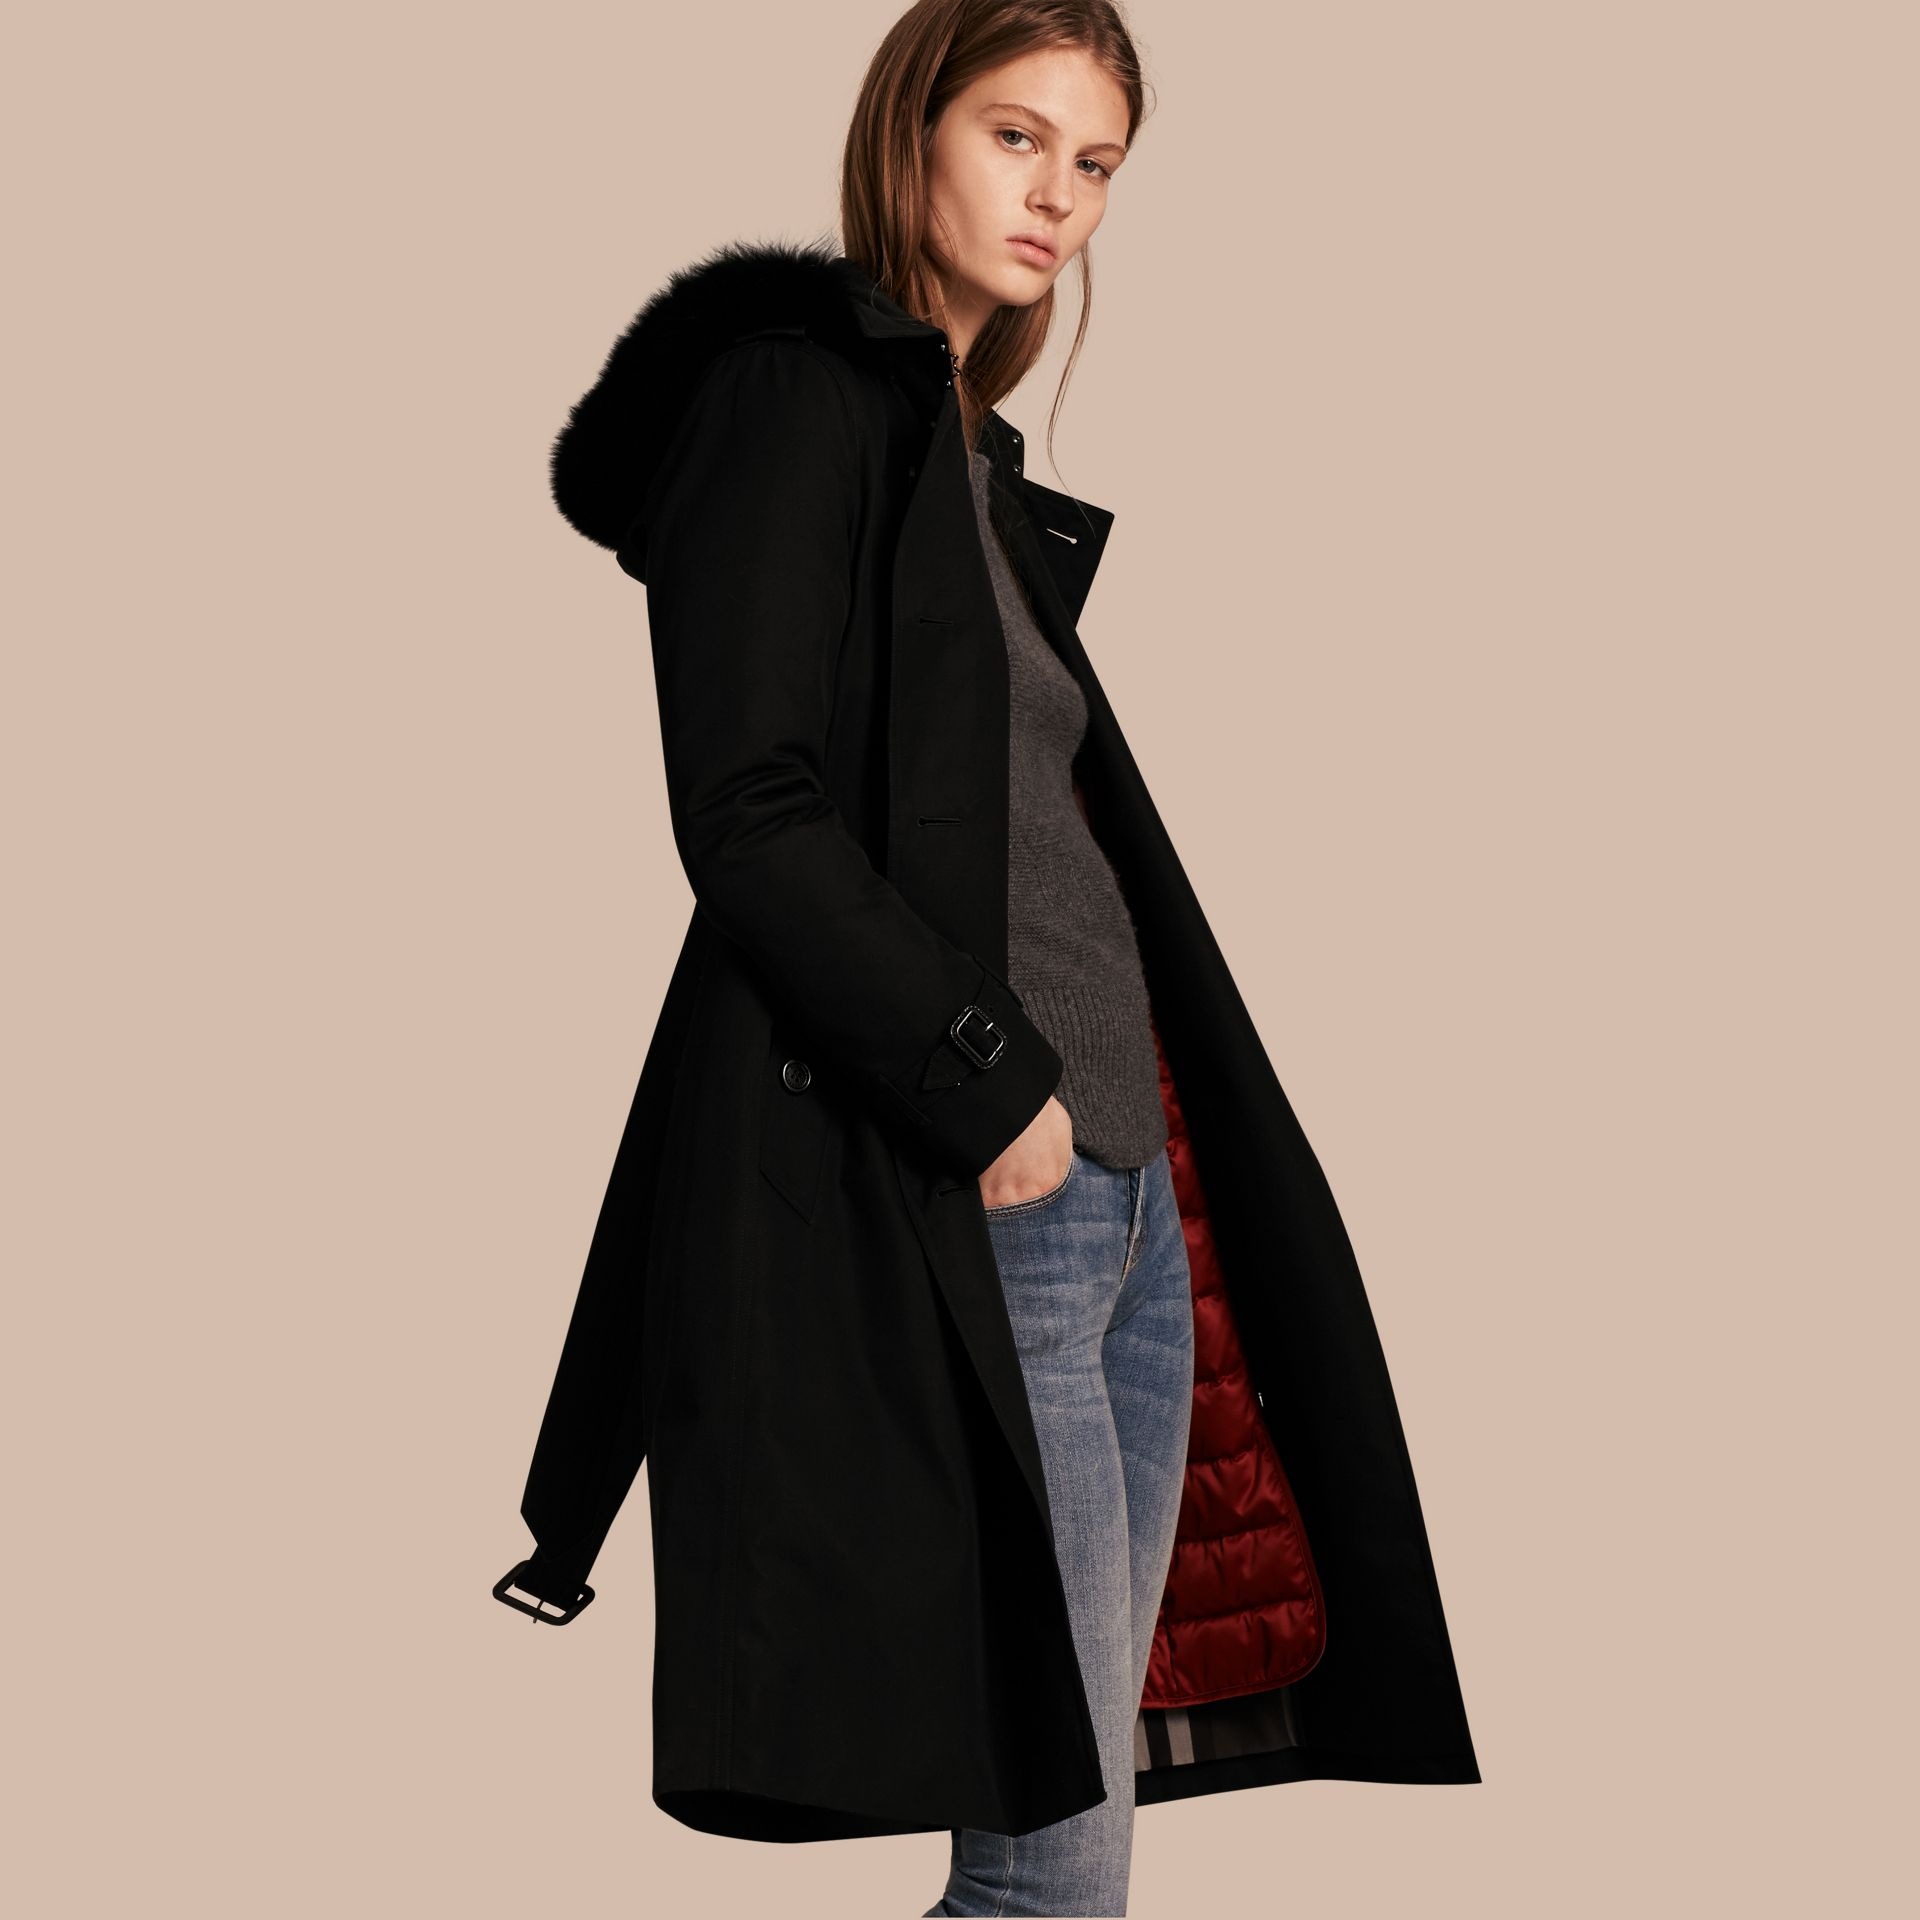 Black Fur-trimmed Hood Trench Coat with Detachable Warmer Black - gallery image 1